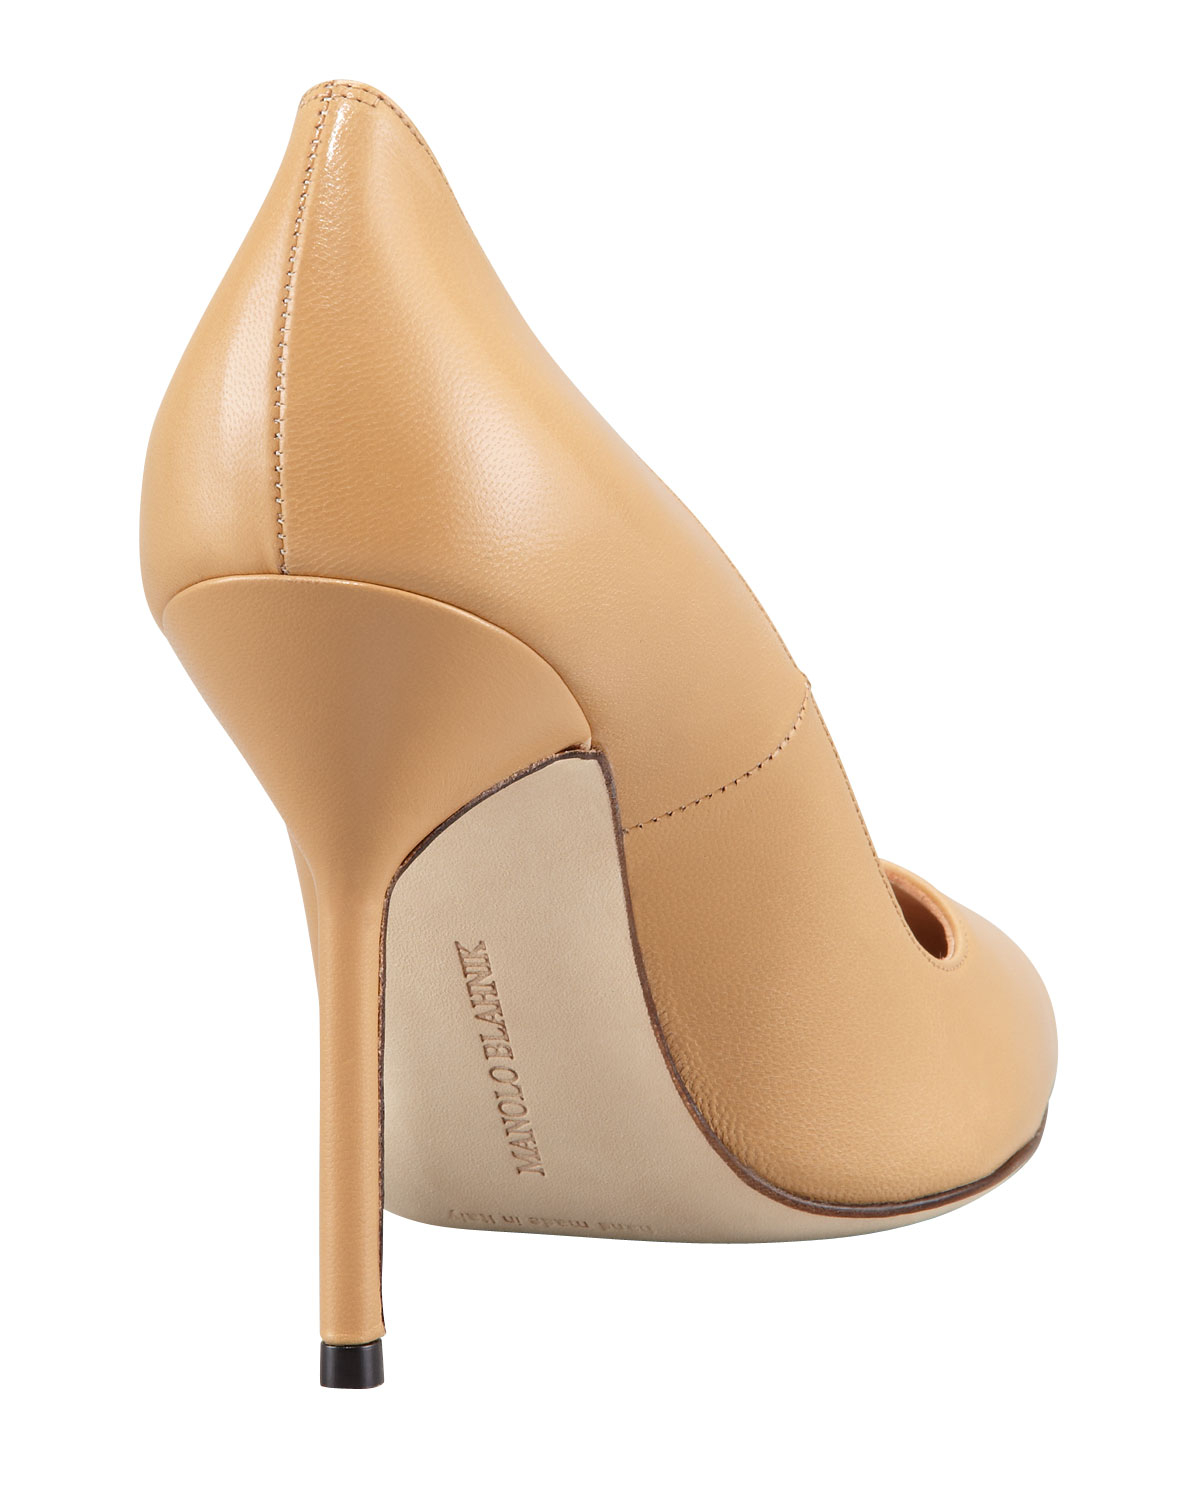 Goat leather work gloves - Manolo Blahnik Bb Pointed Toe Pump In Natural Lyst